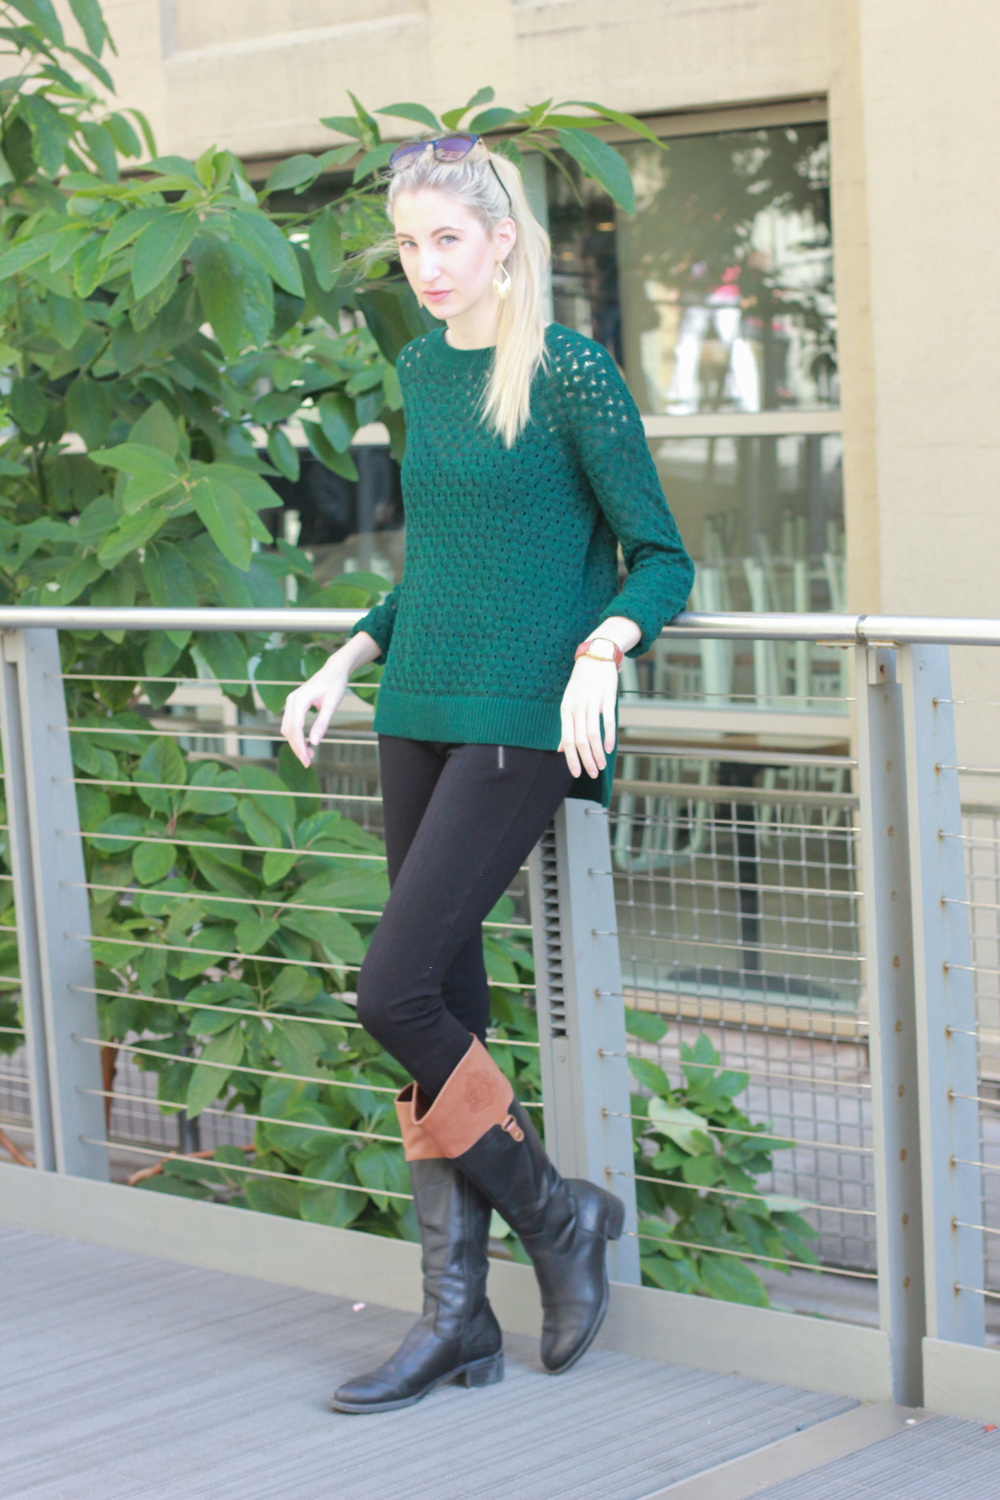 LOFT green sweater, J.Crew pixie pants, vintage citizen watch, franco sarto riding boots, LOFT cat eye sunglasses, LOFT fringe earrings